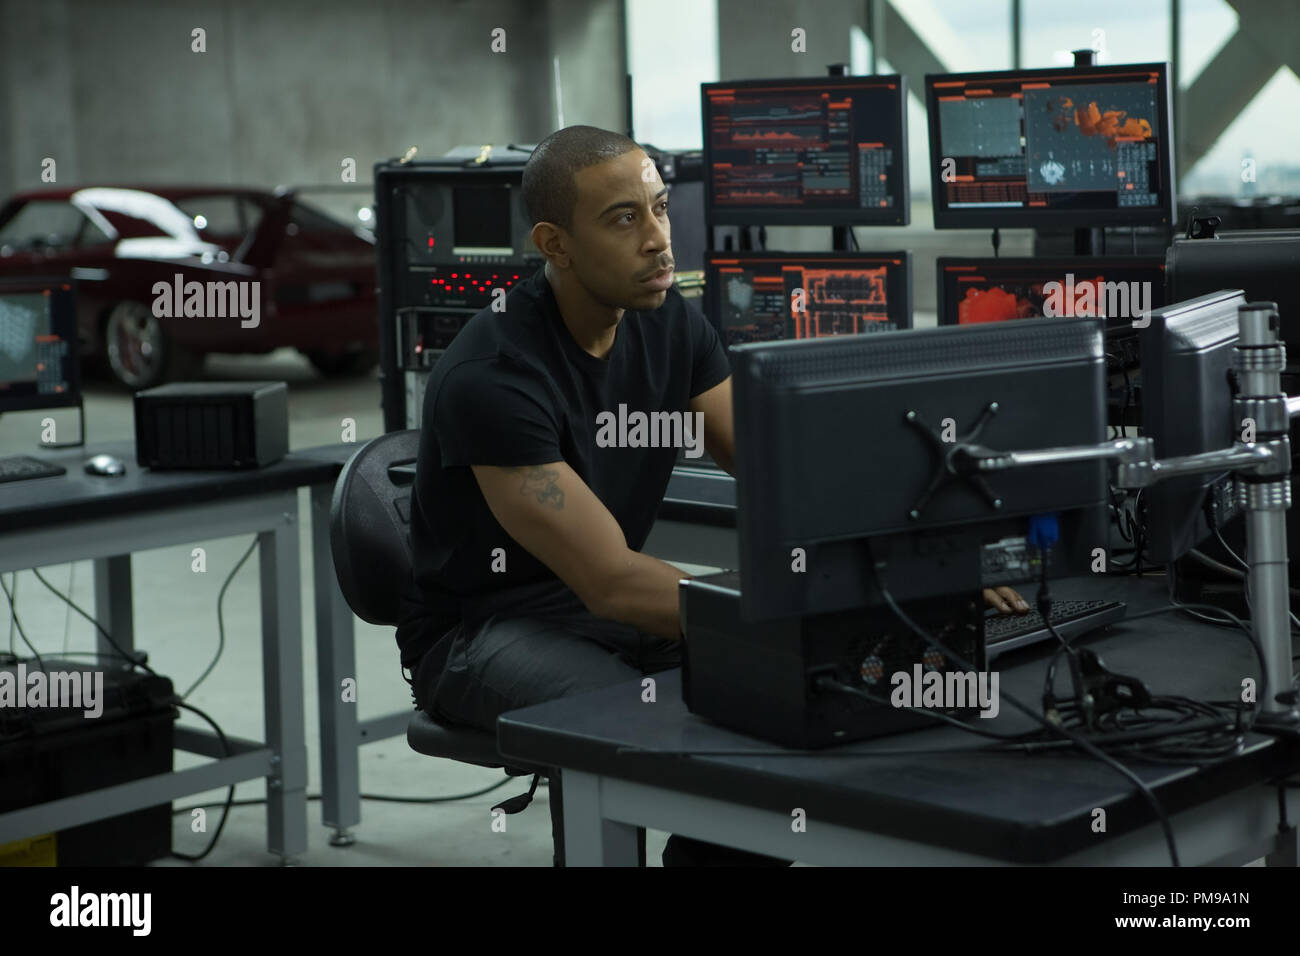 Chris Ludacris Bridges As Tej In Fast Furious 6 The Next Installment Of The Global Blockbuster Franchise Built On Speed Stock Photo Alamy